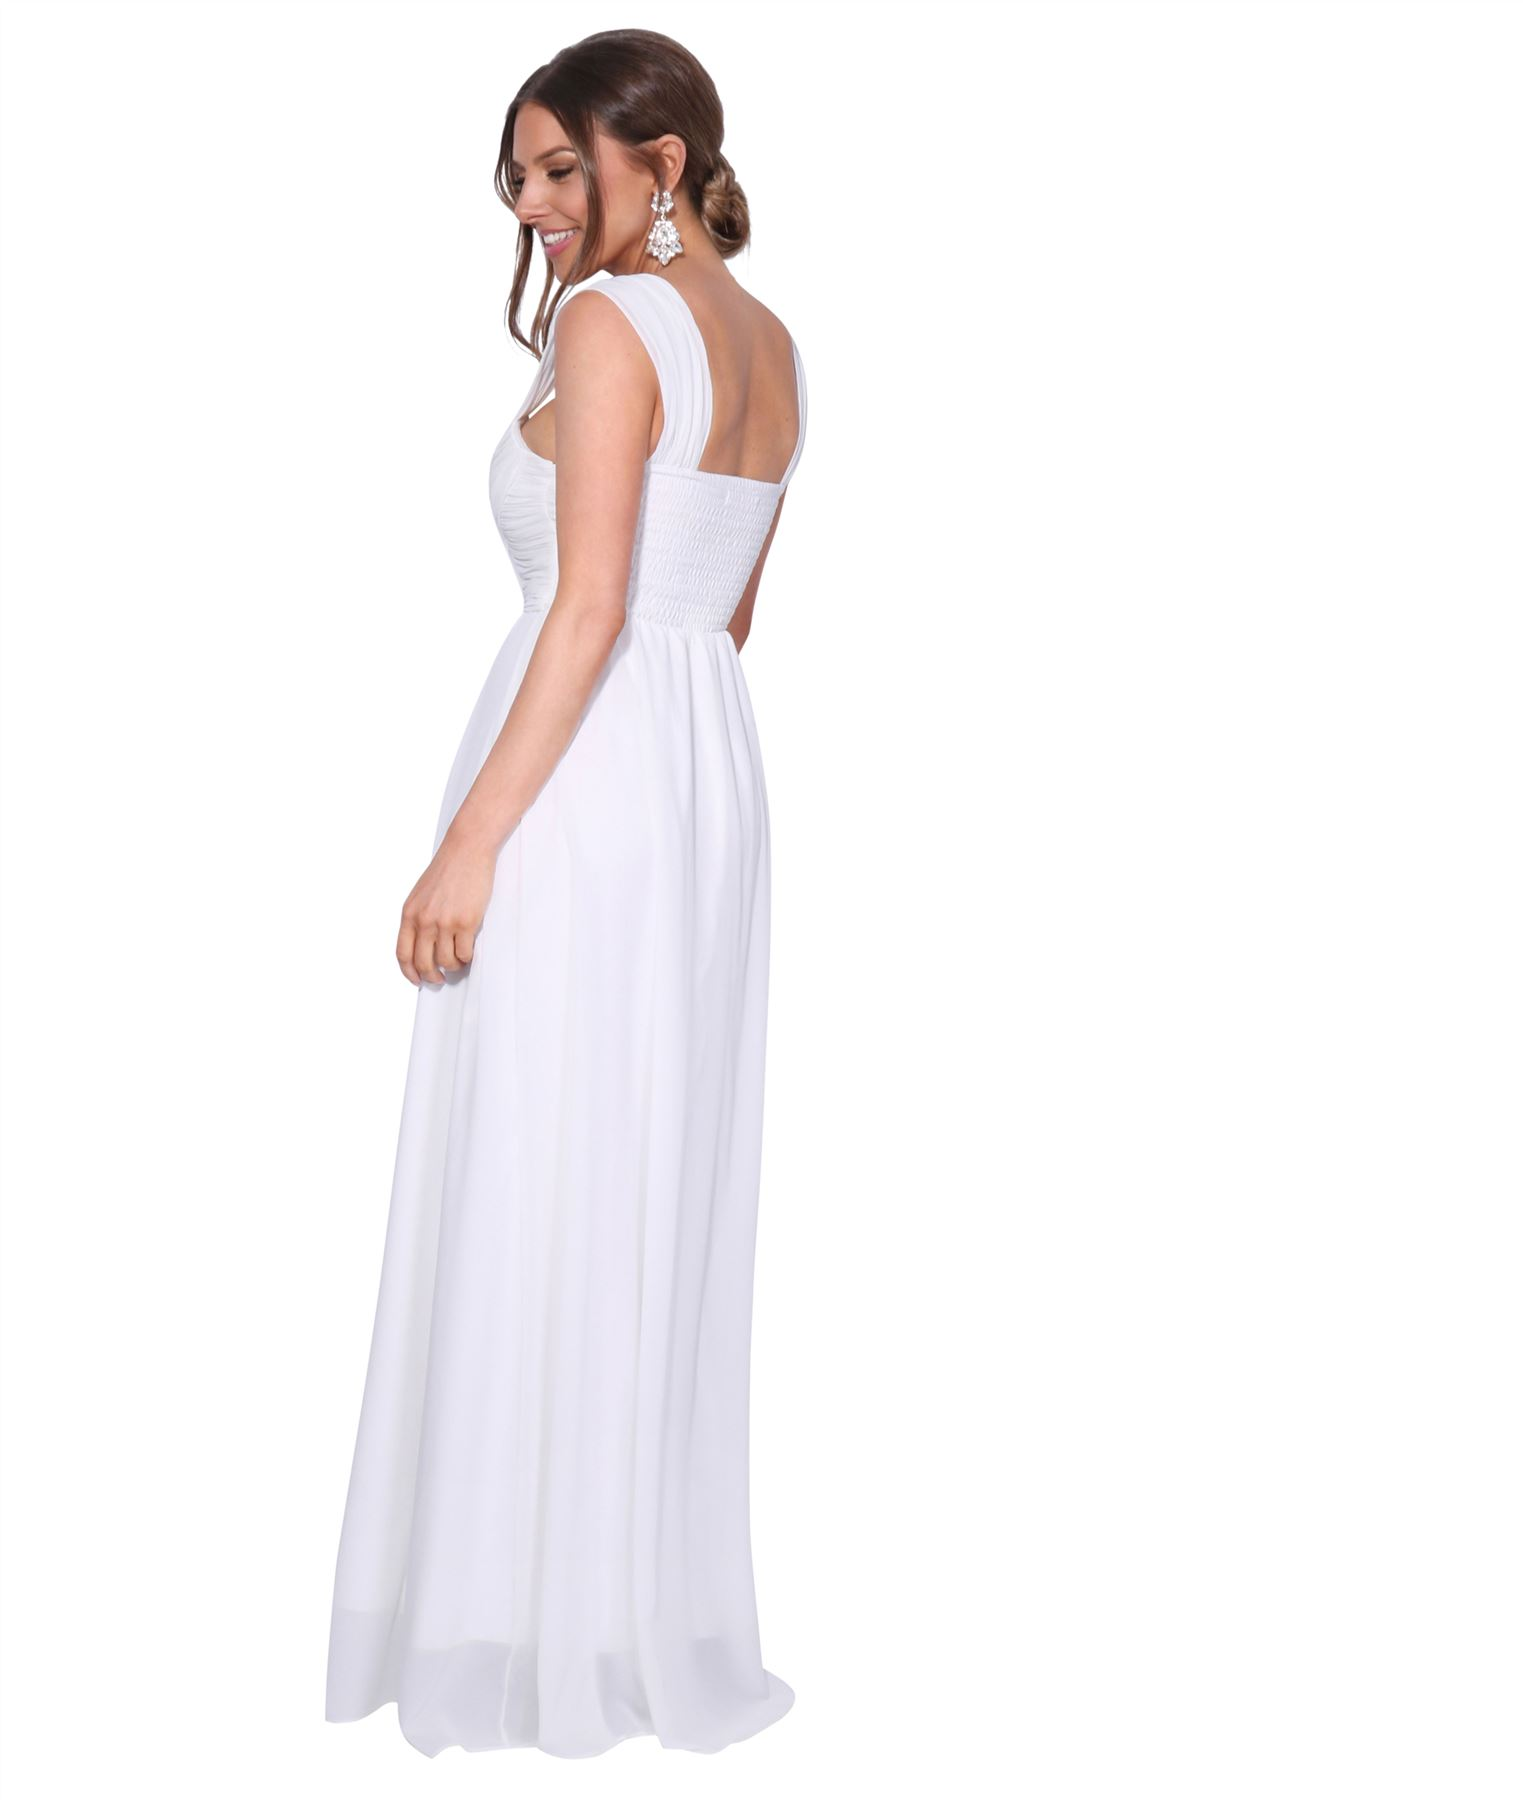 Womens-Formal-Evening-Wedding-Maxi-Prom-Dress-Long-On-Off-Shoulder-Ball-Gown thumbnail 63